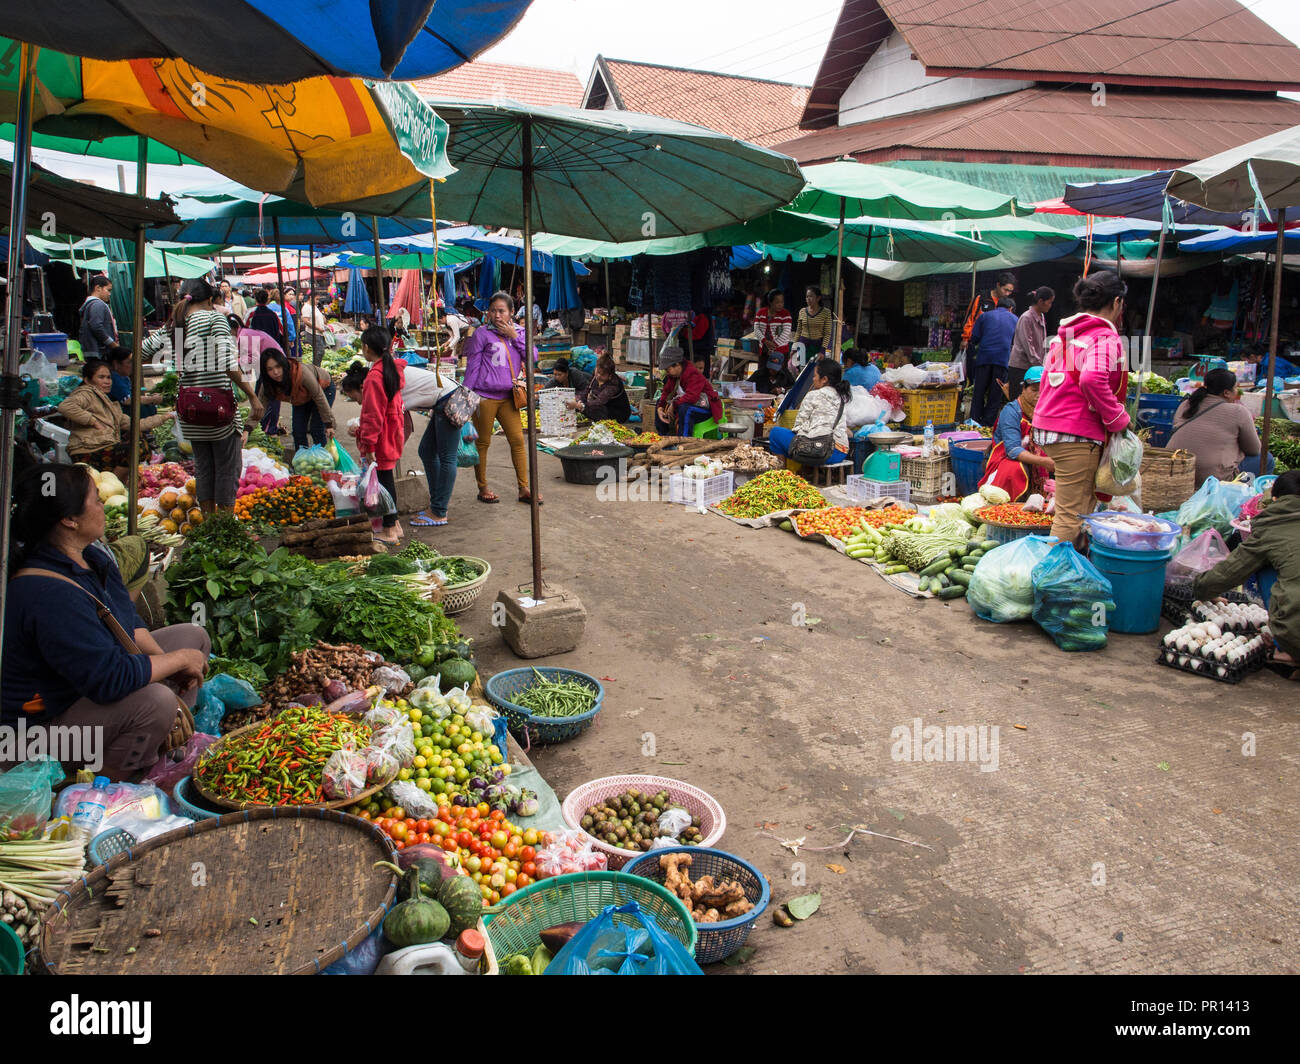 Central outdoor market, Luang Prabang, Laos, Indochina, Southeast Asia, Asia - Stock Image